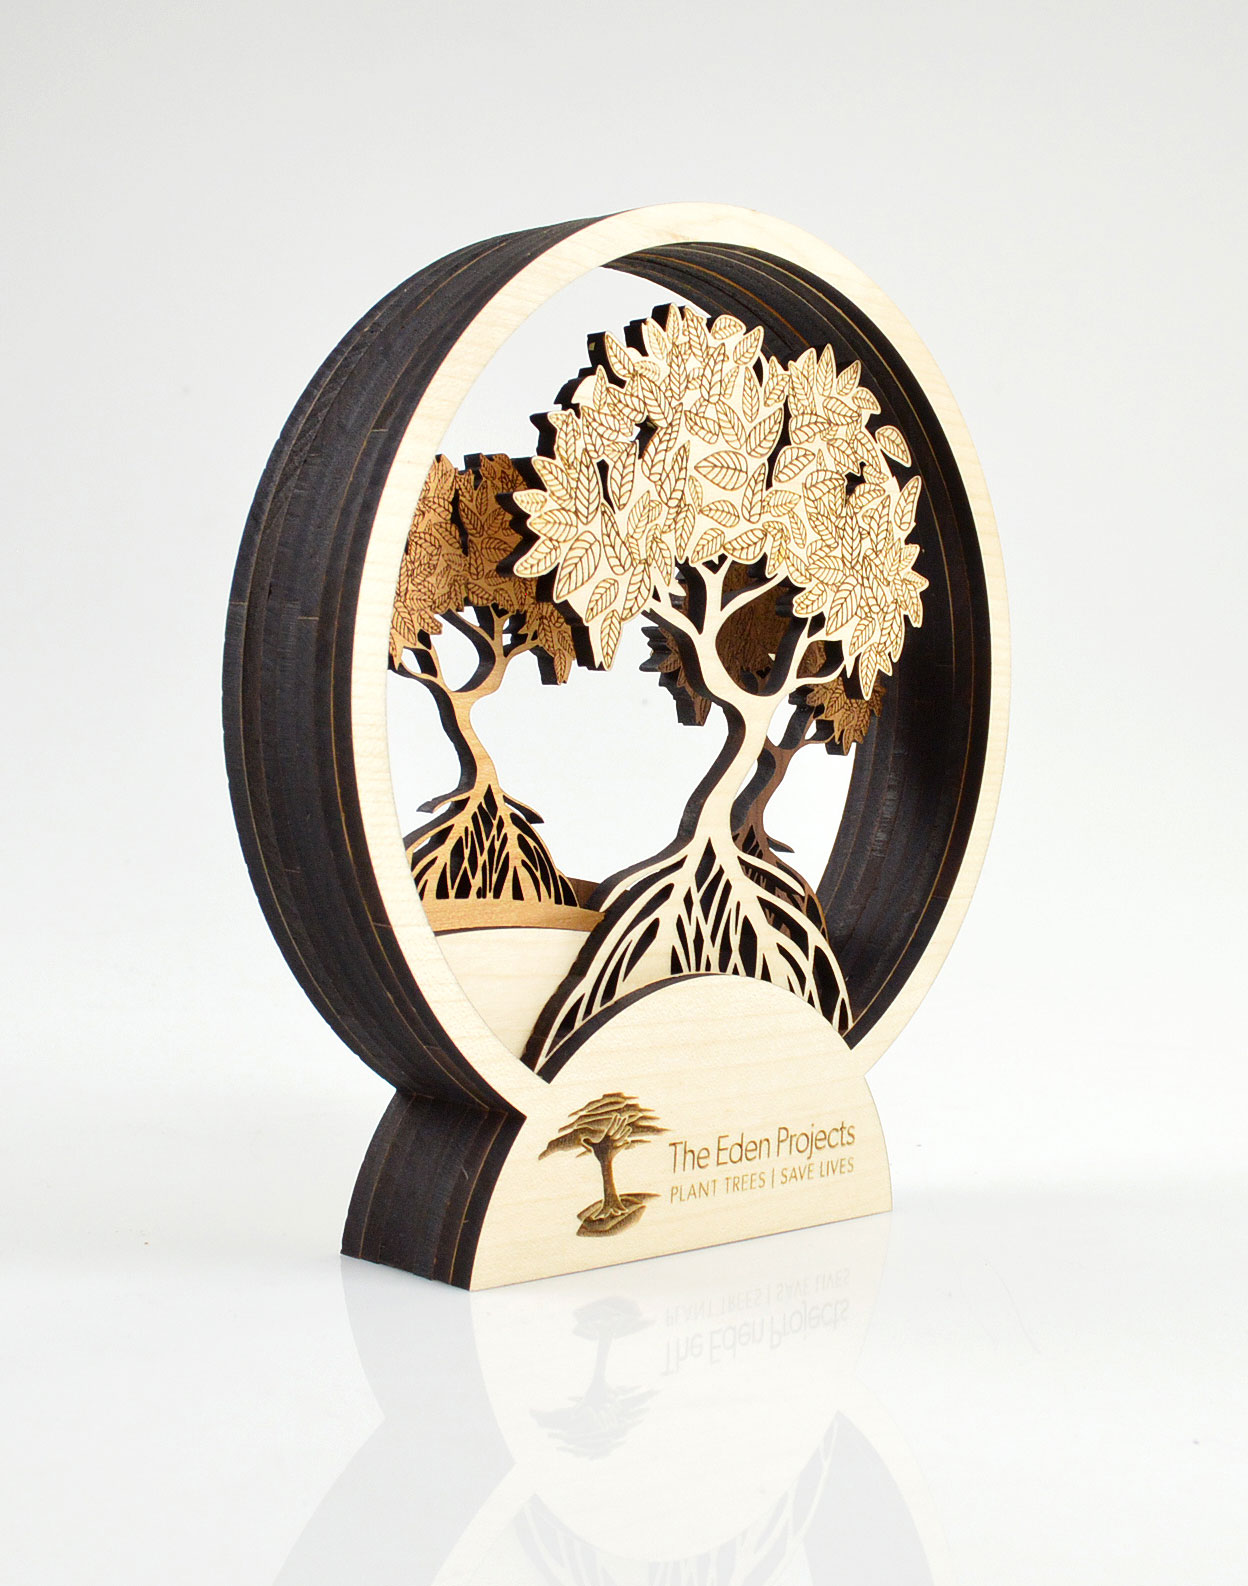 custom-award_sunwood_laser-engraved_eco-friendly_non-profit_recognition-trophy_wood-sculpture_canada